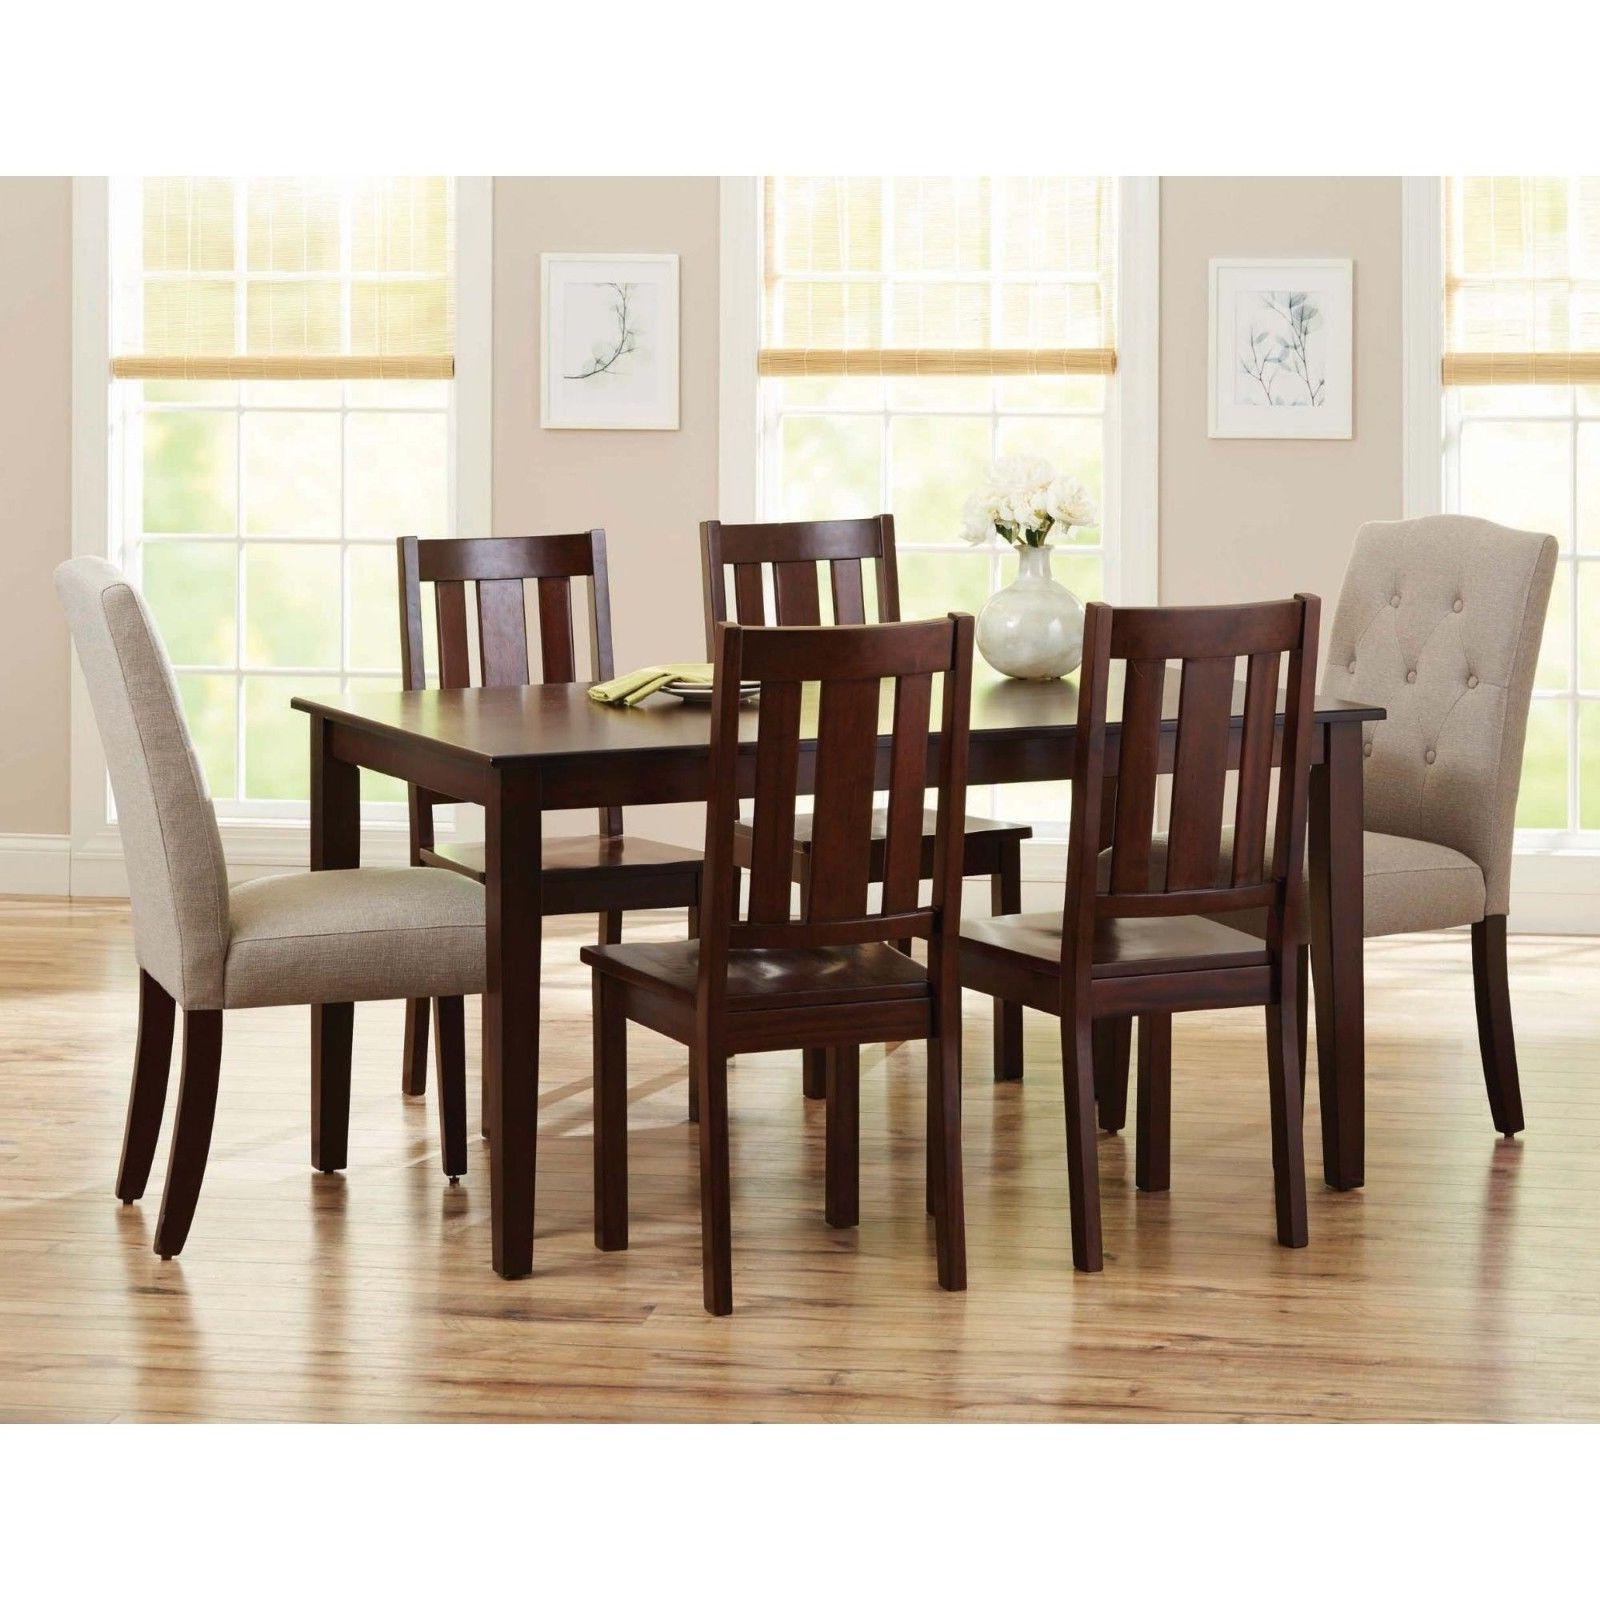 Home Furniture Table 6 Chairs Solid